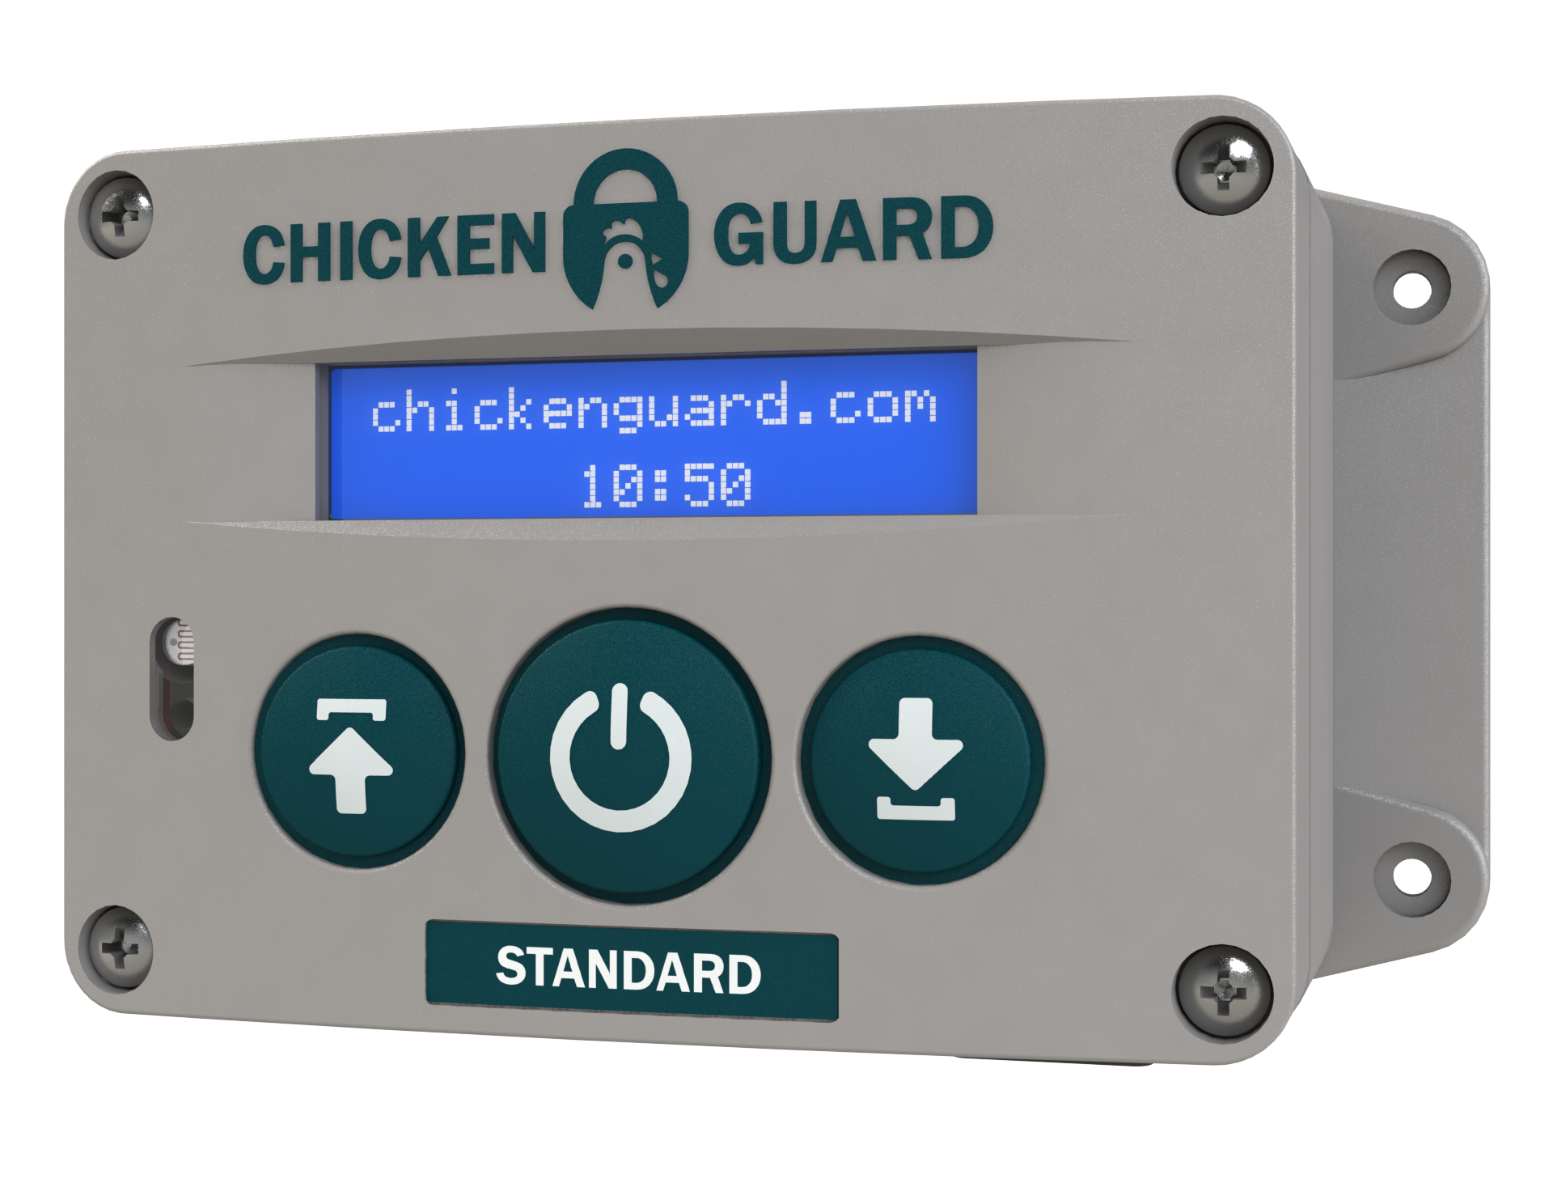 Automatic Door Opener For The Devon Chicken Coop